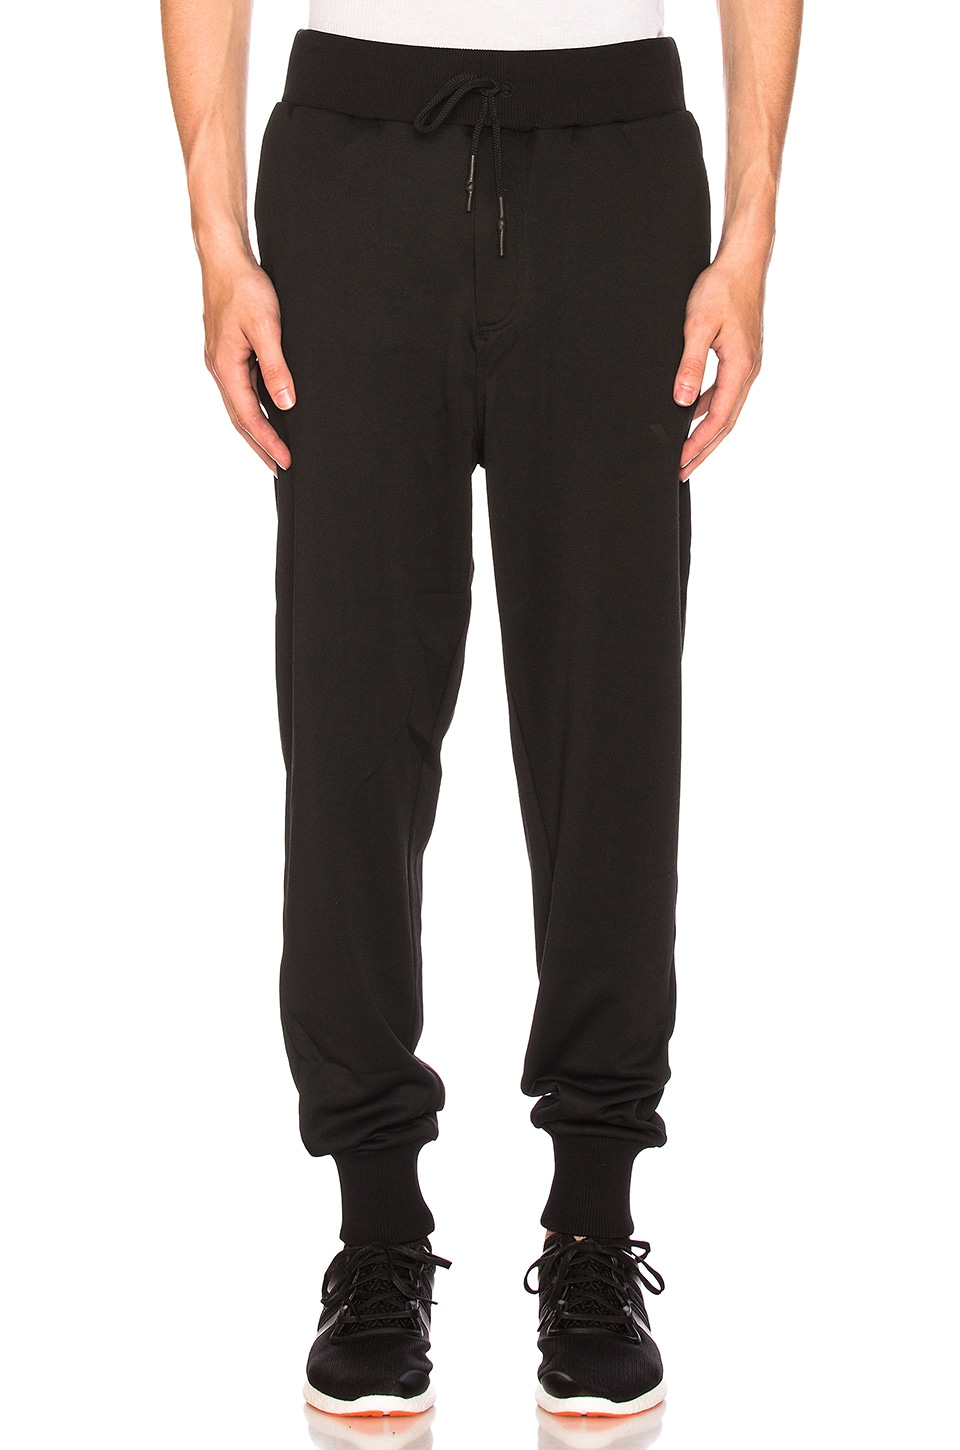 CL Track Pant by Y-3 Yohji Yamamoto